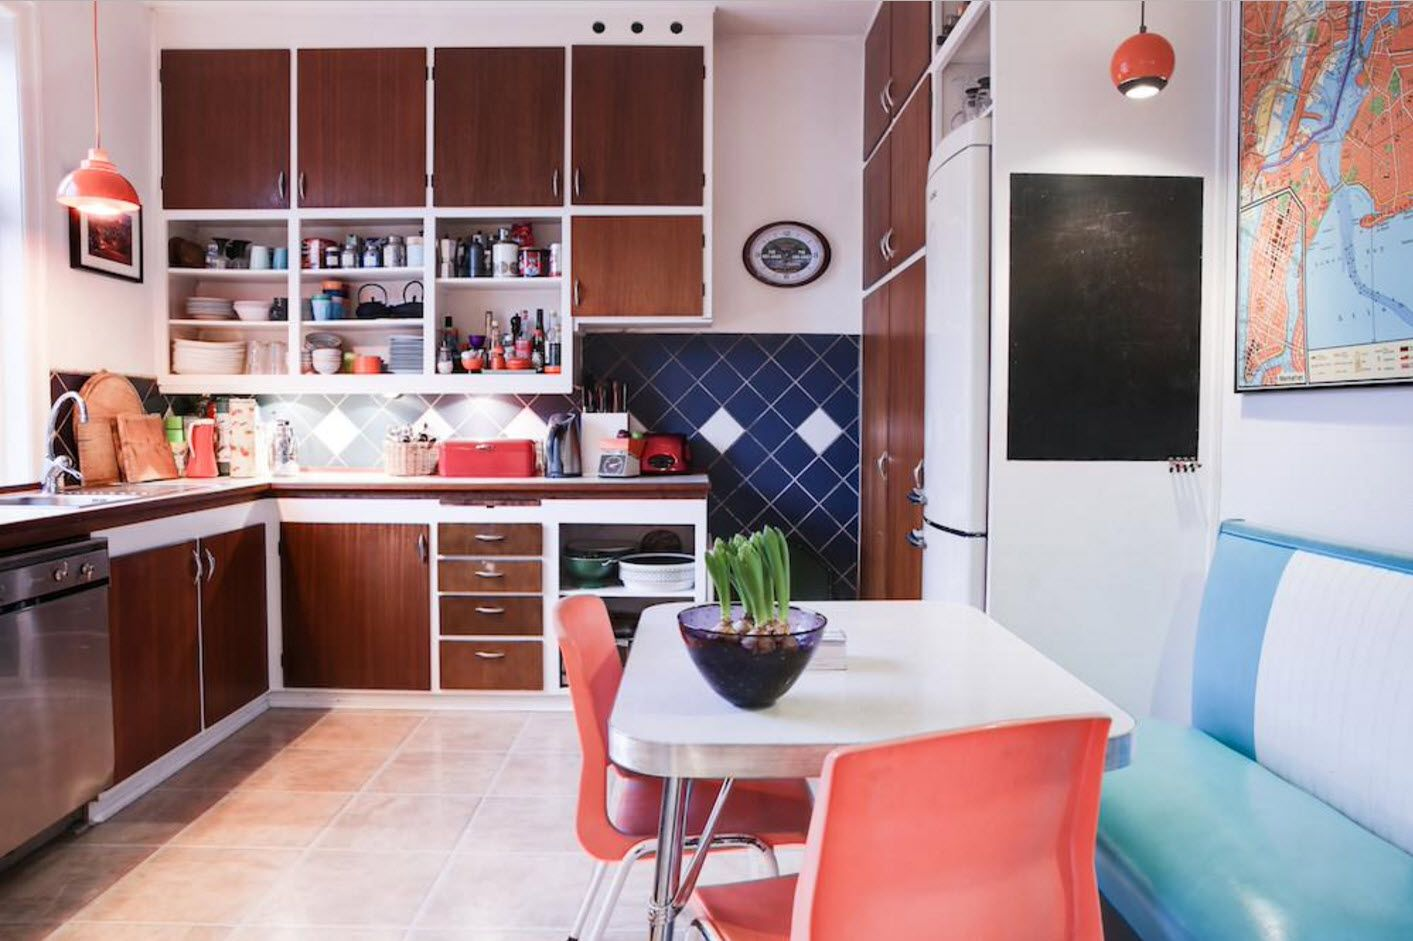 40 Square Feet Kitchen Modern Design Ideas & Layout Types. Neat color gamma with pink chairs and light brown furniture facades